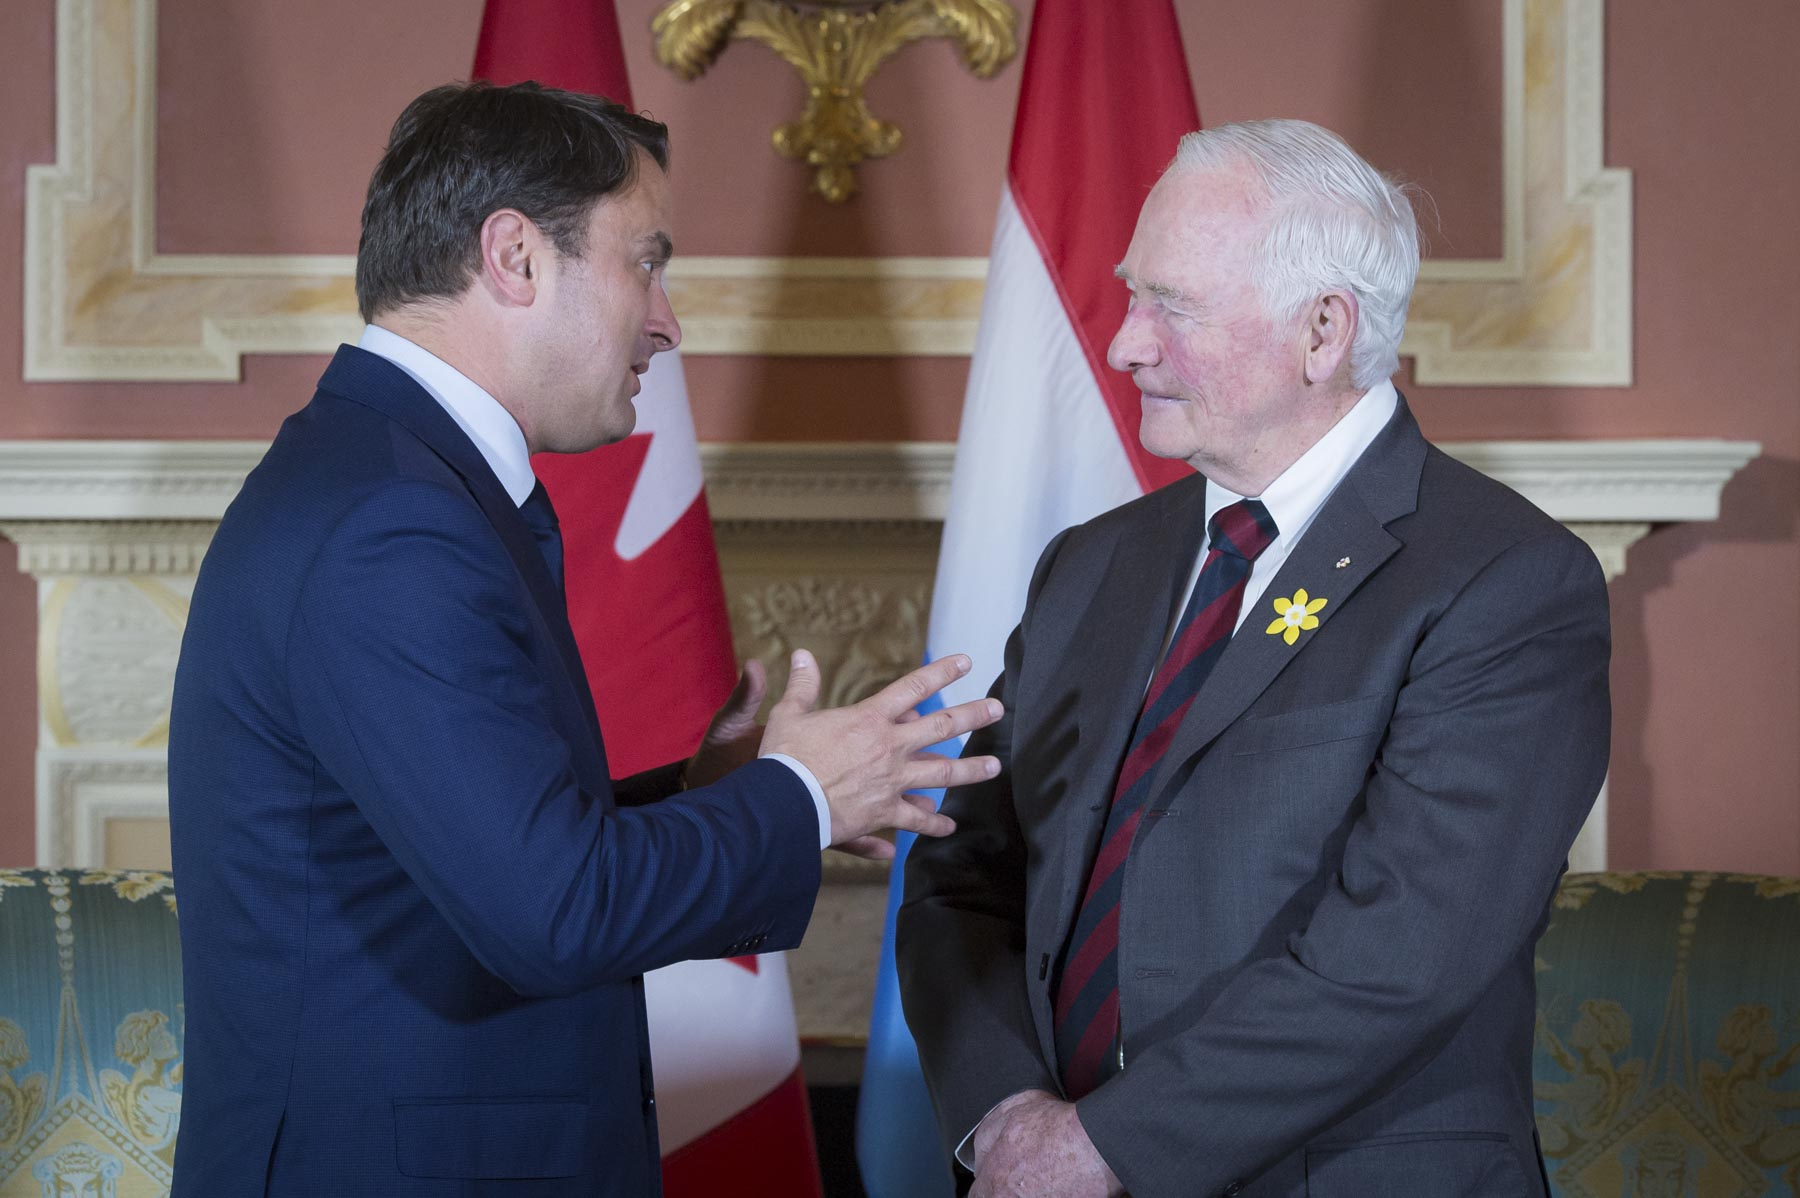 His Excellency the Right Honourable David Johnston, Governor General of Canada, met with His Excellency Xavier Bettel, Prime Minister of the Grand Duchy of Luxembourg, at Rideau Hall on Wednesday, April 19, 2017.